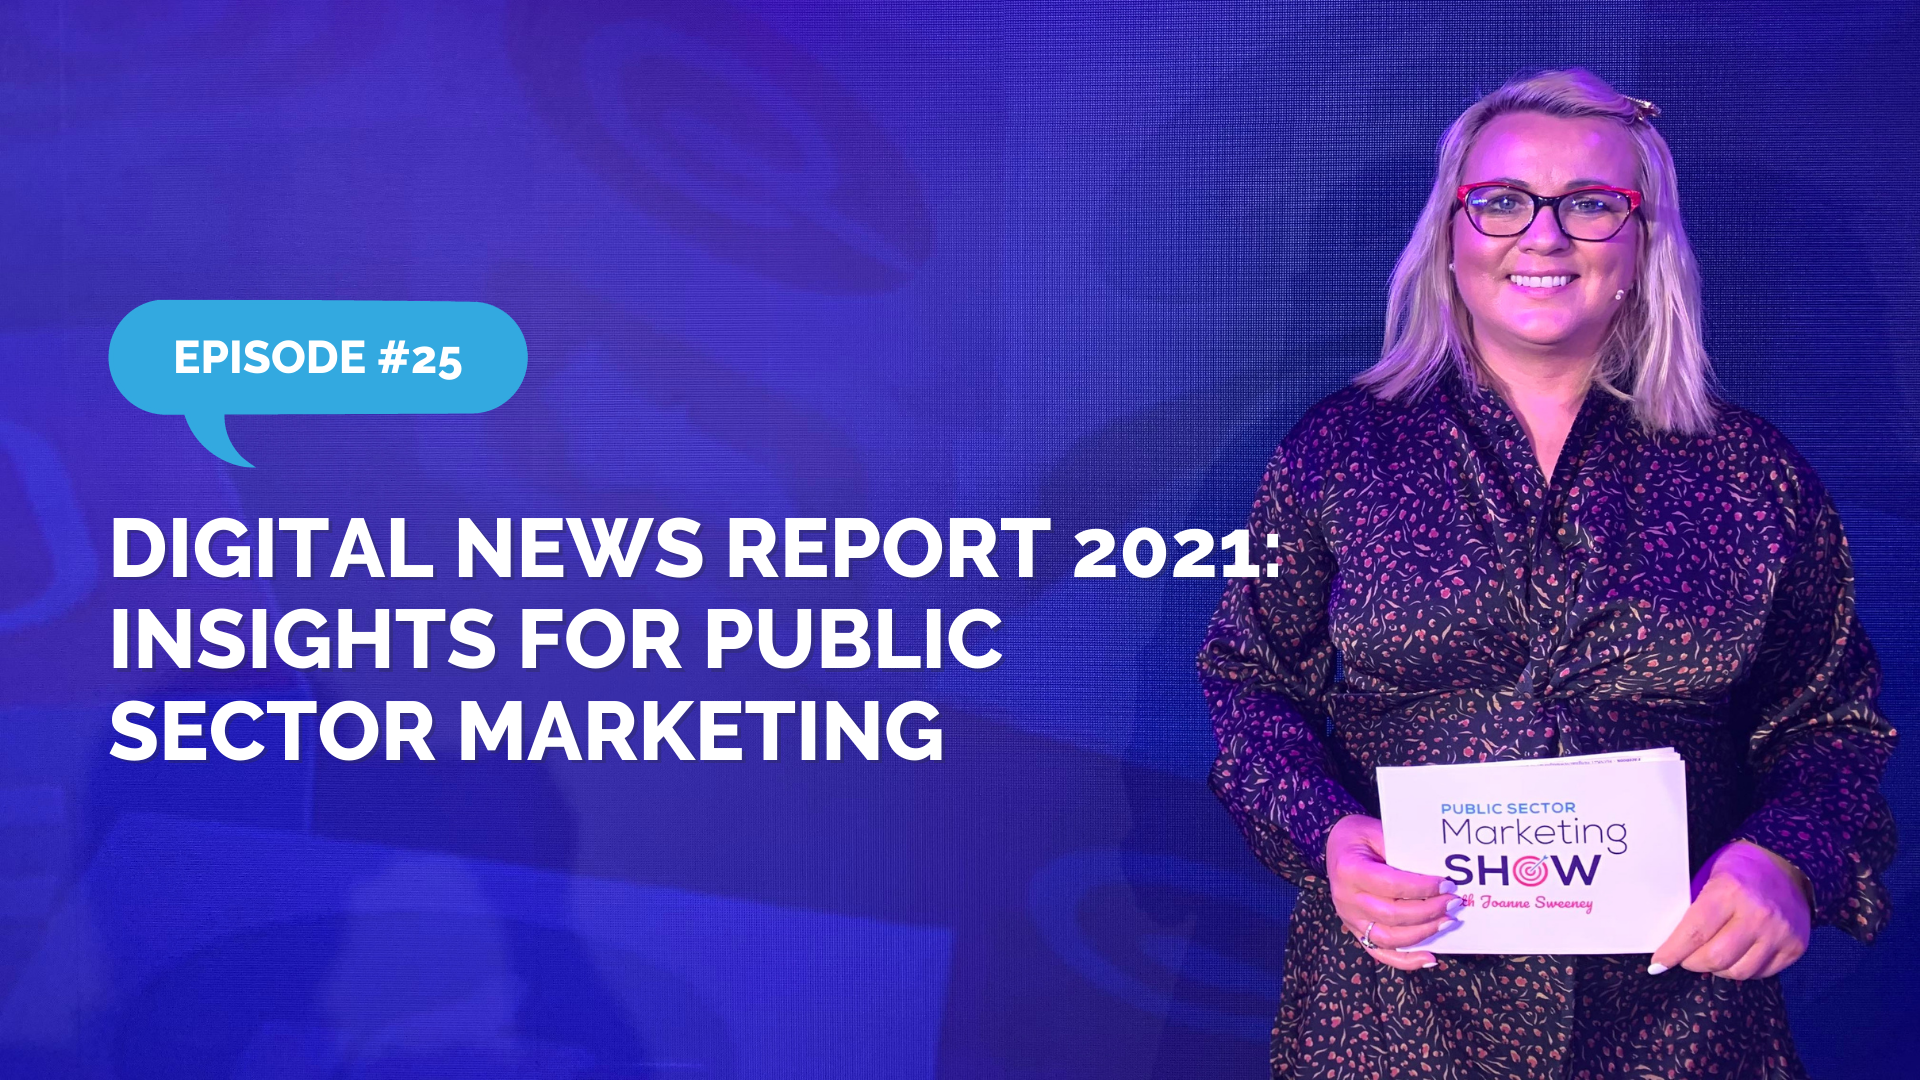 Episode 25 - Digital News Report 2021: Insights for Public Sector Marketing